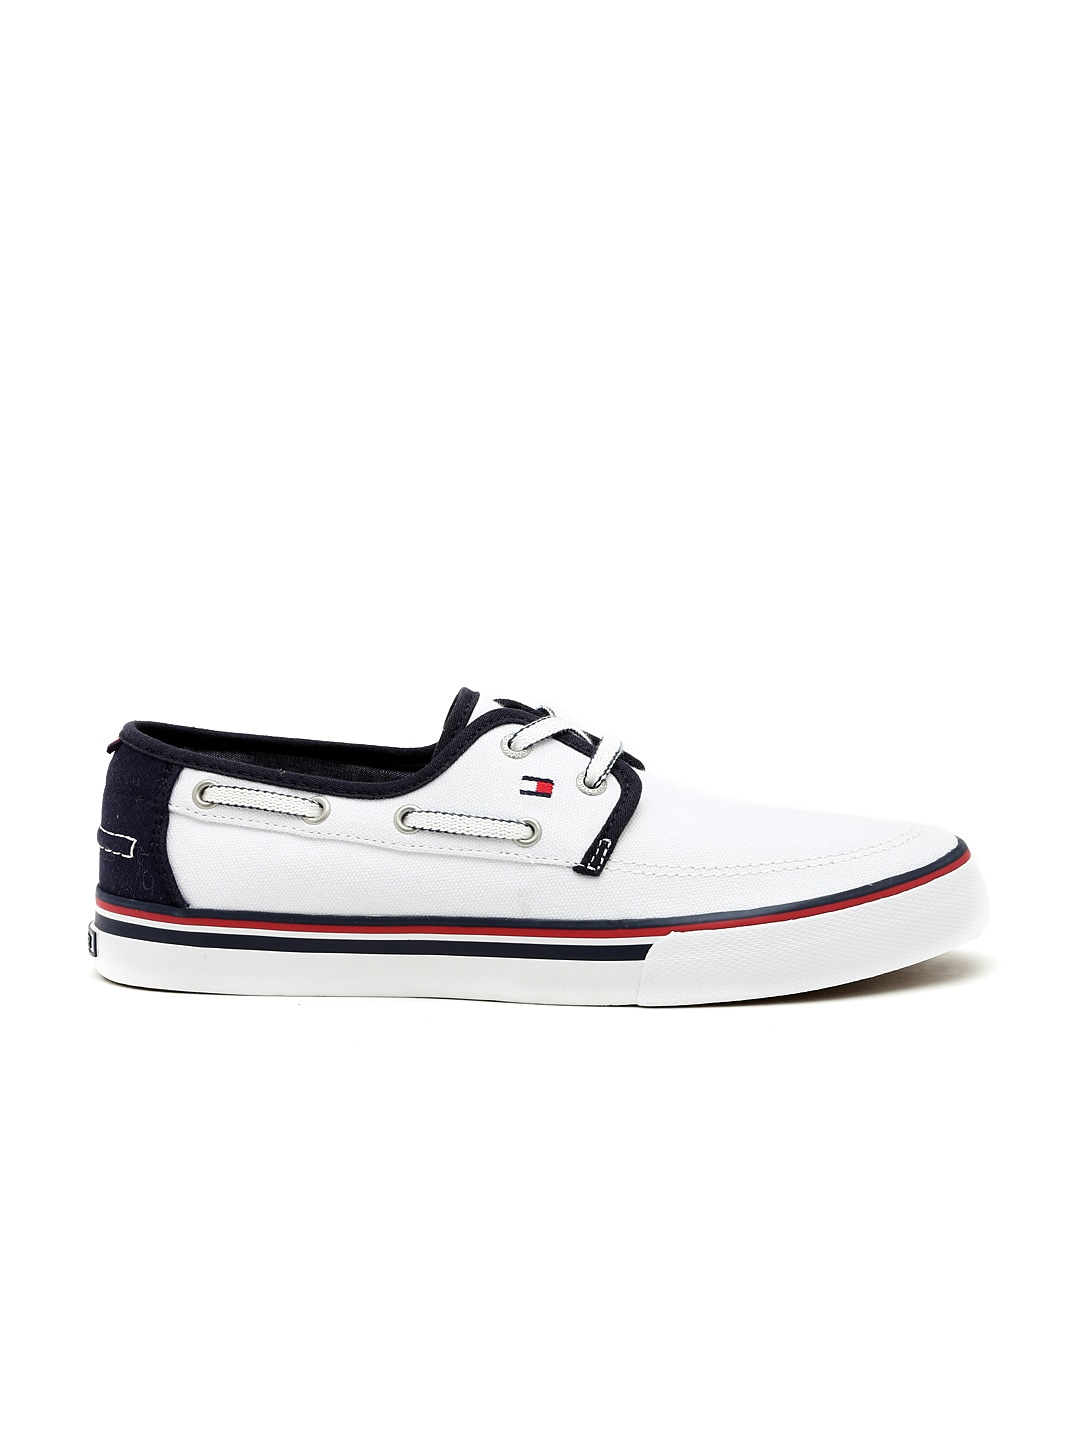 fd381e09b4533 Tommy hilfiger a6amf037 Men White Boat Shoes- Price in India